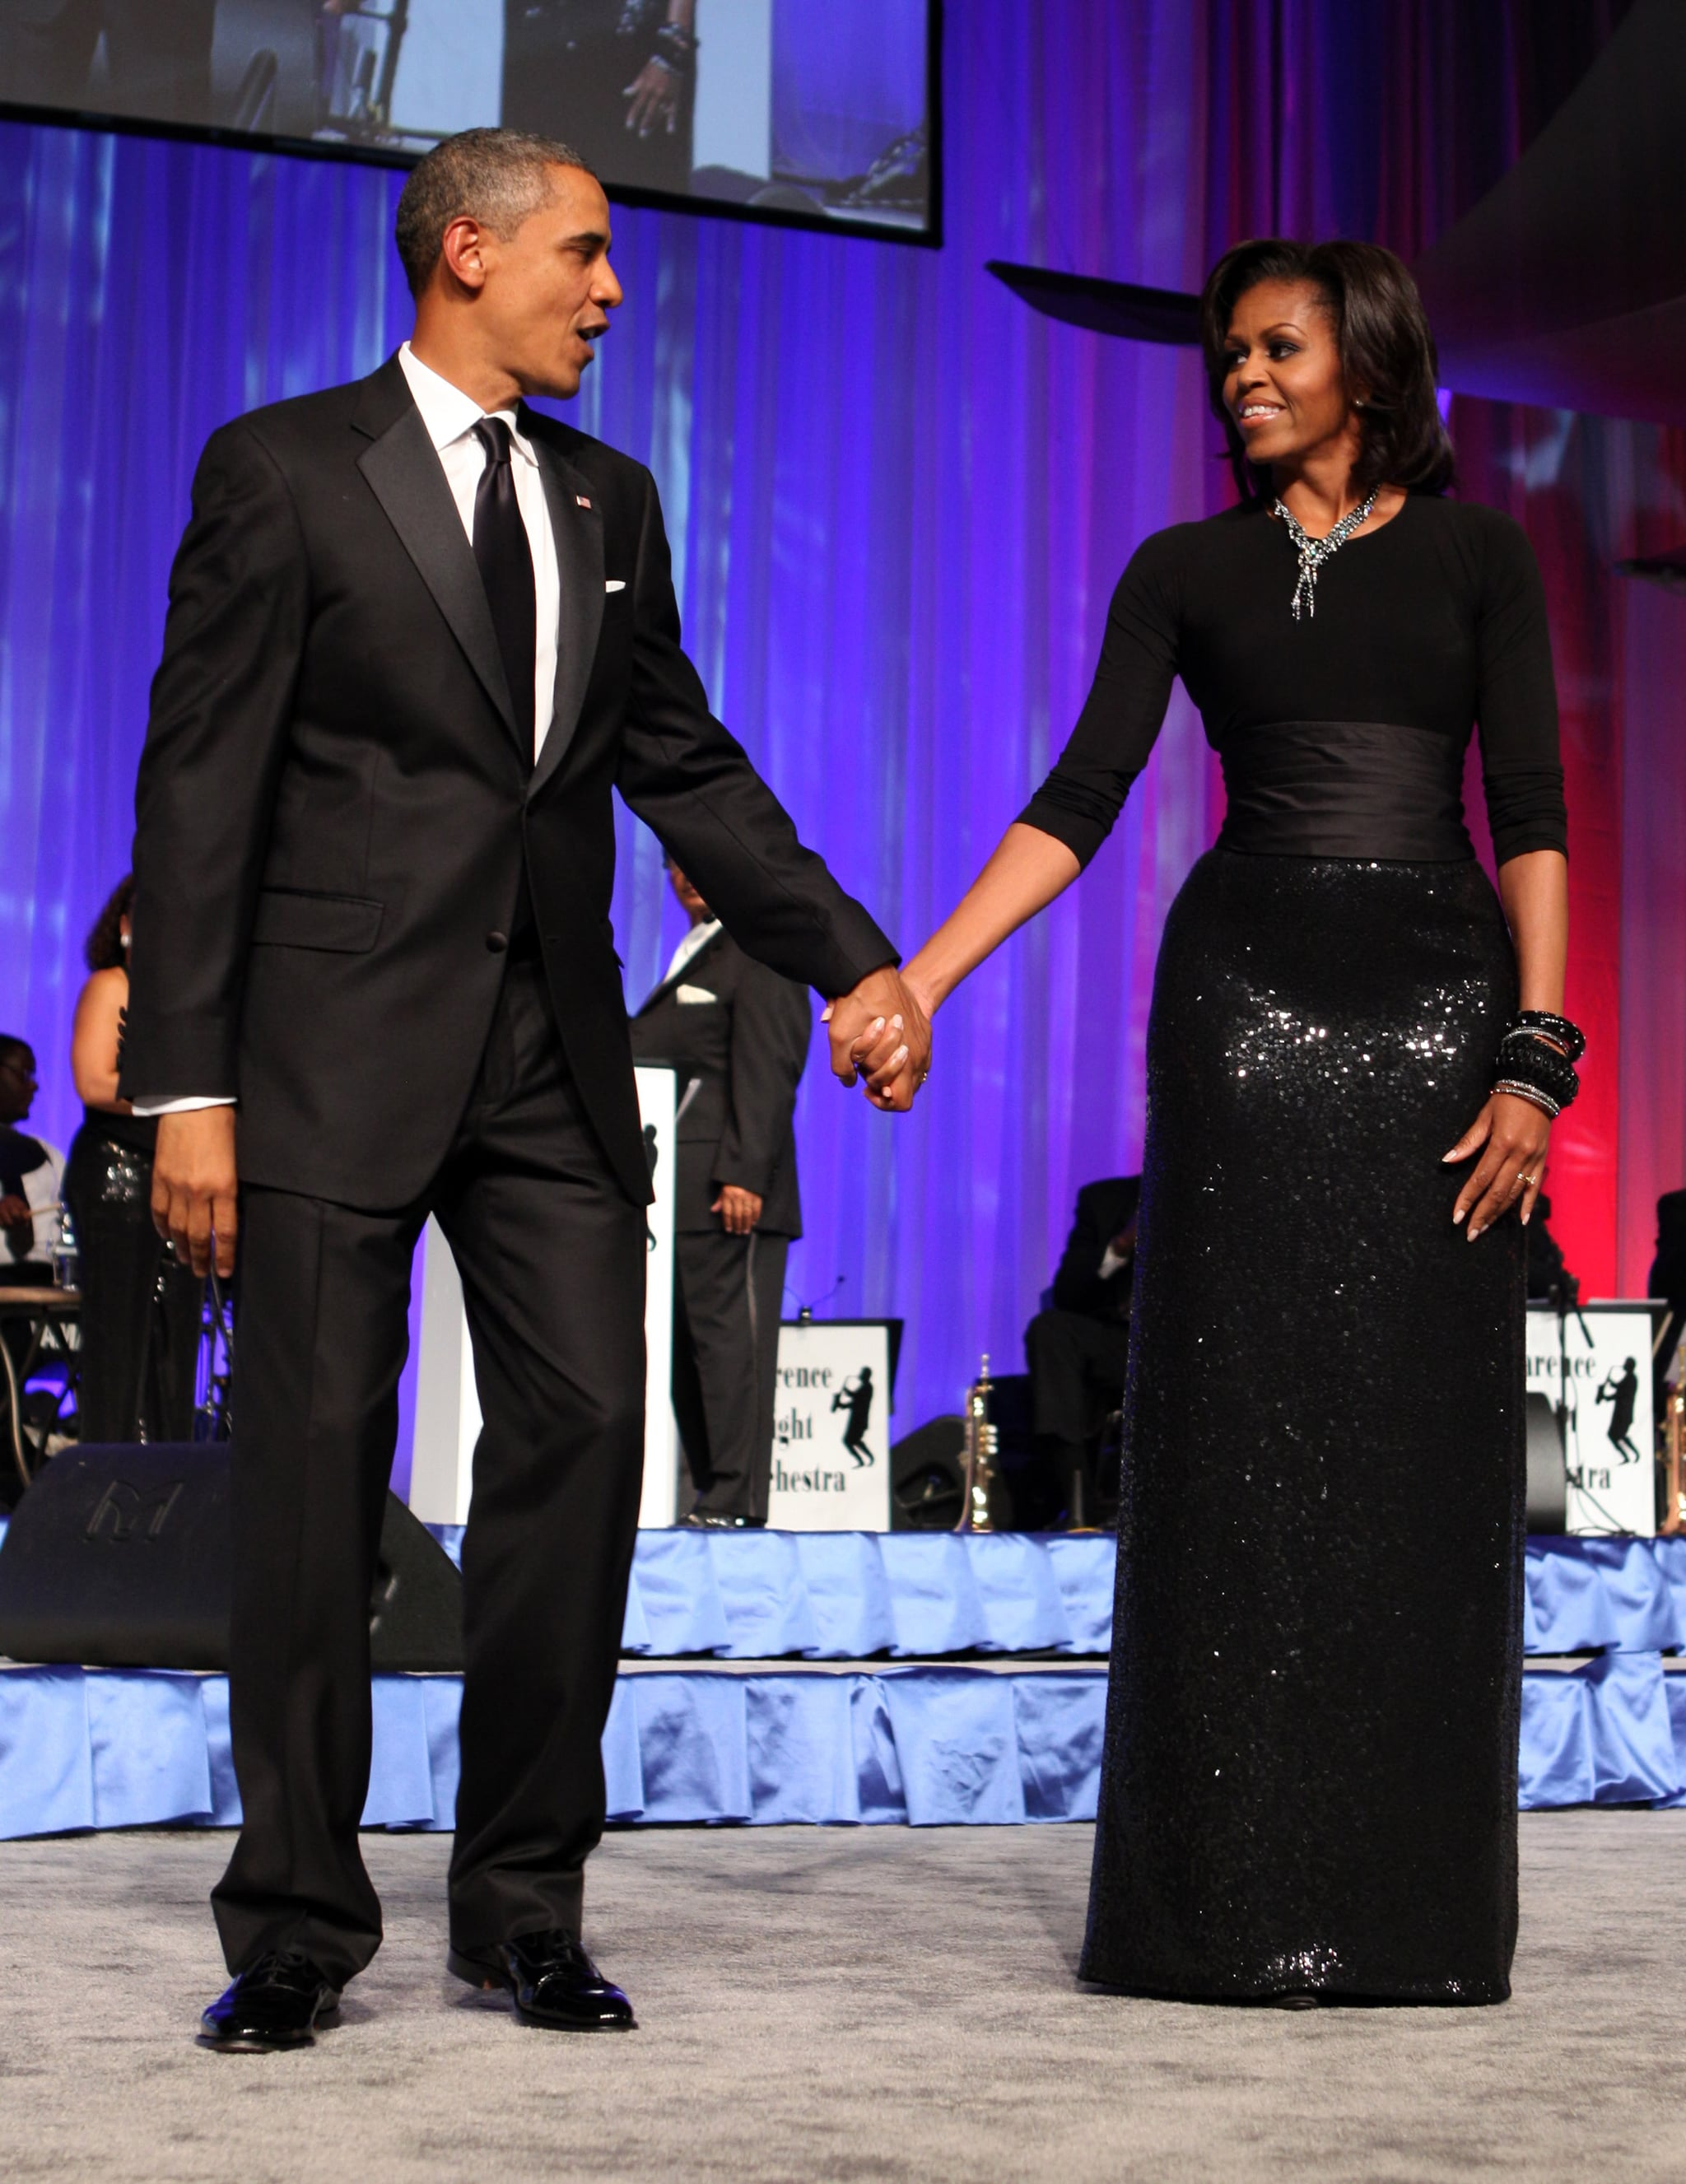 She wore a stunning black gown, complete with sparkly cummerbund, for an appearance at the annual Phoenix Awards in 2011.